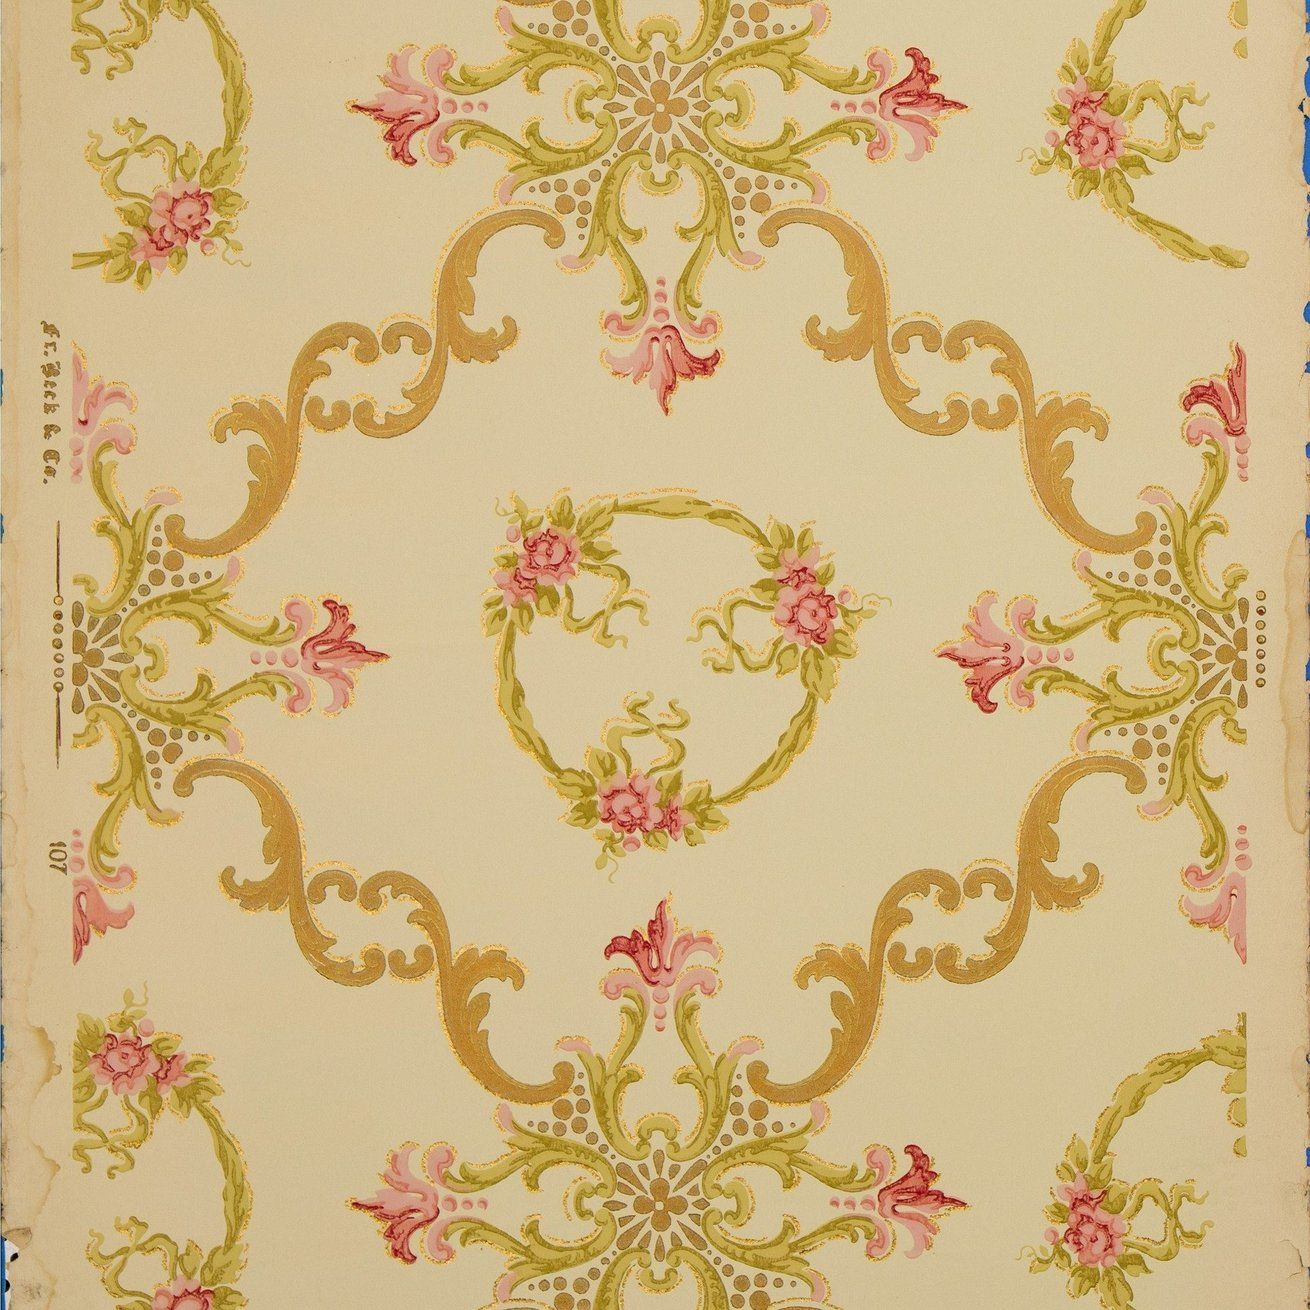 Scrolls Wreaths And Rose Clusters Antique Wallpaper Remnant Antique Wallpaper Original Wallpaper Wallpaper